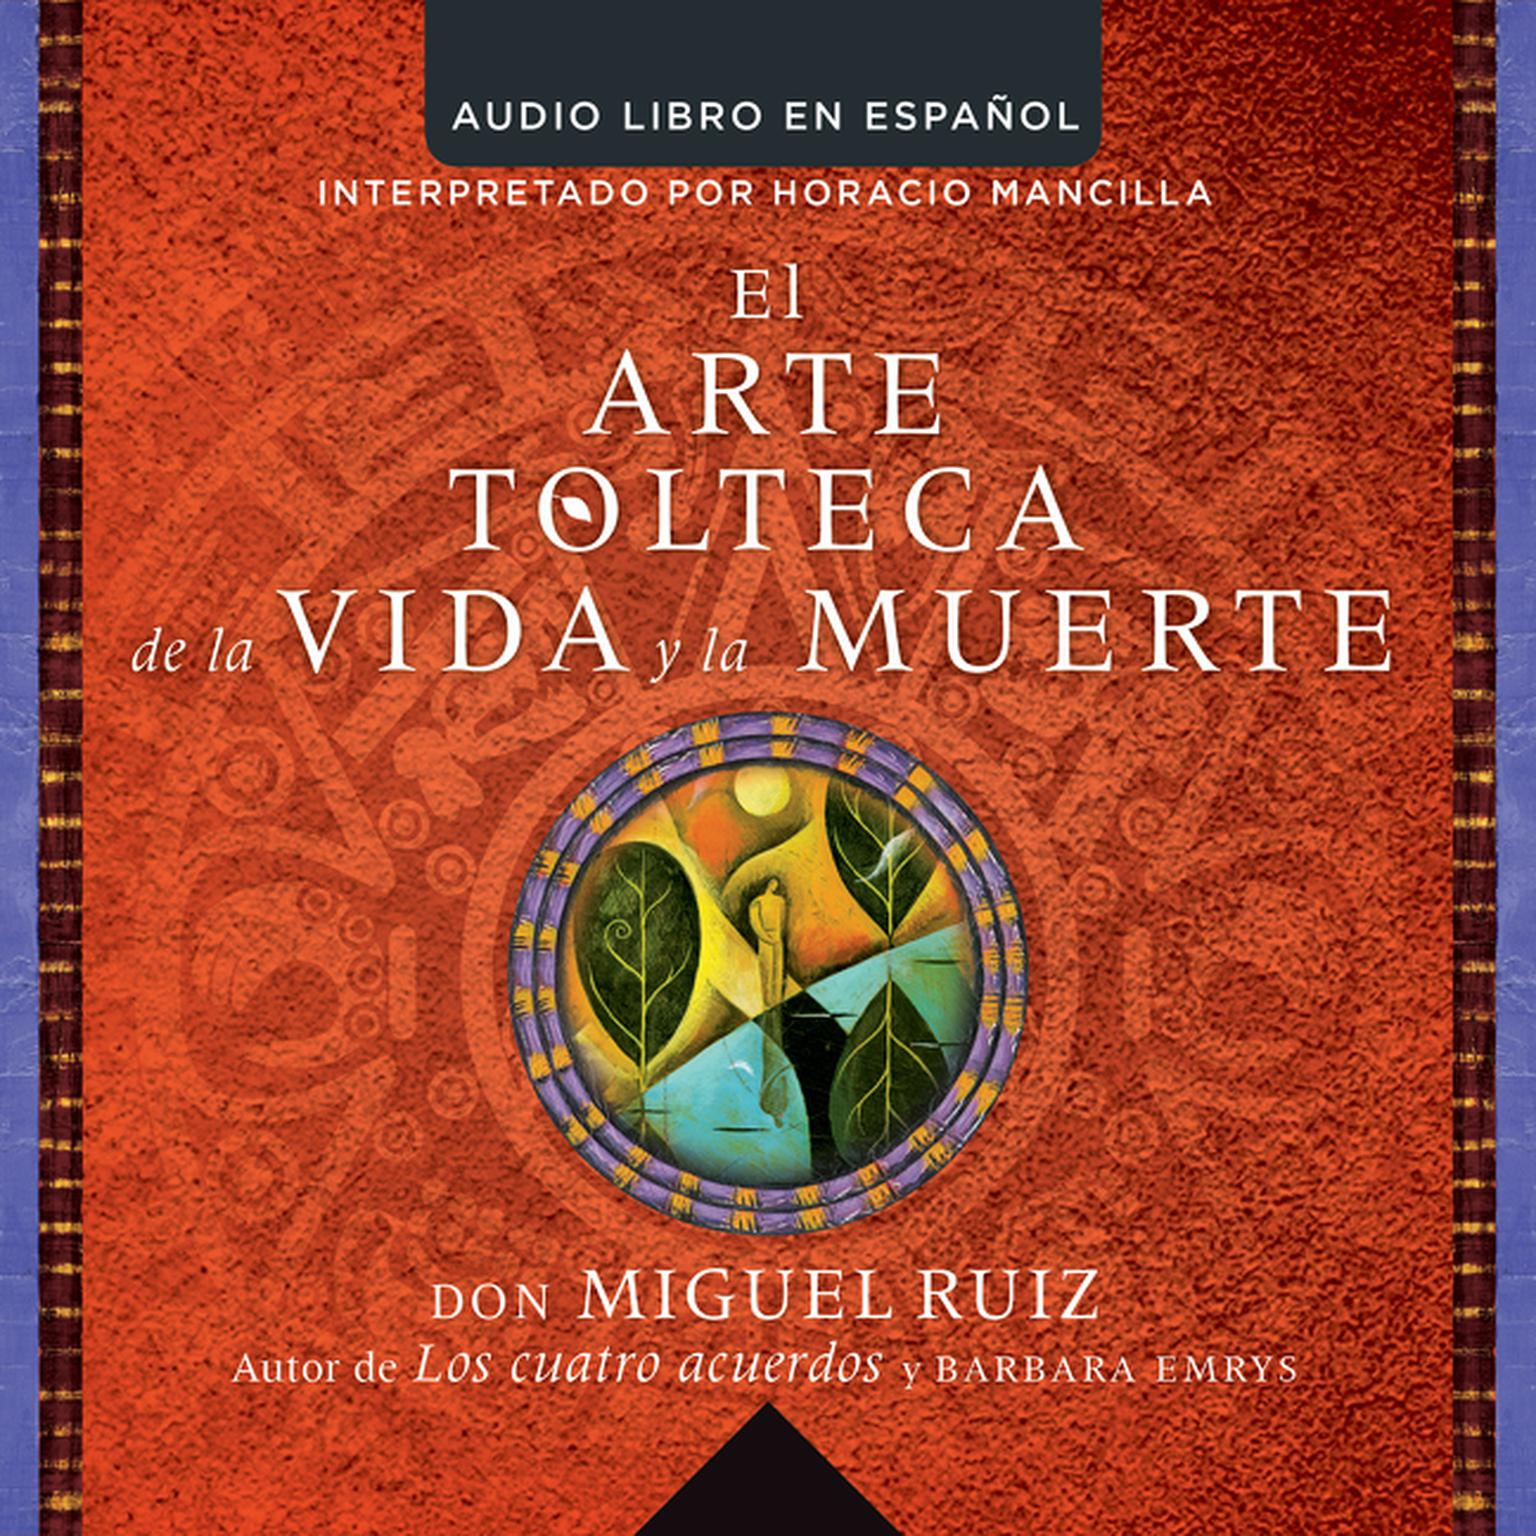 Printable El arte tolteca de la vida y la muerte (The Toltec Art of Life and Death - Spanish Edition) Audiobook Cover Art